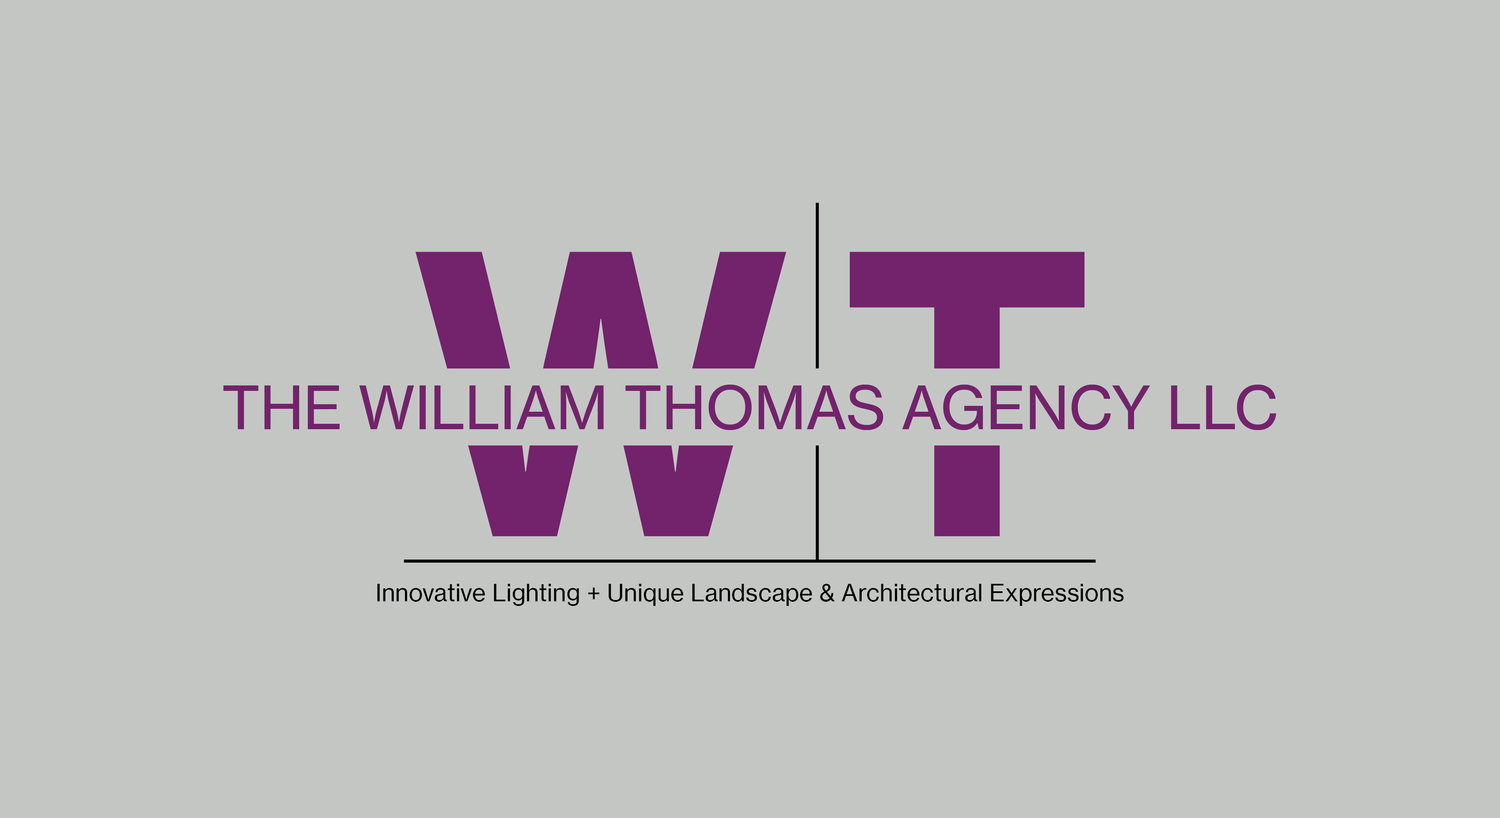 The William Thomas Agency